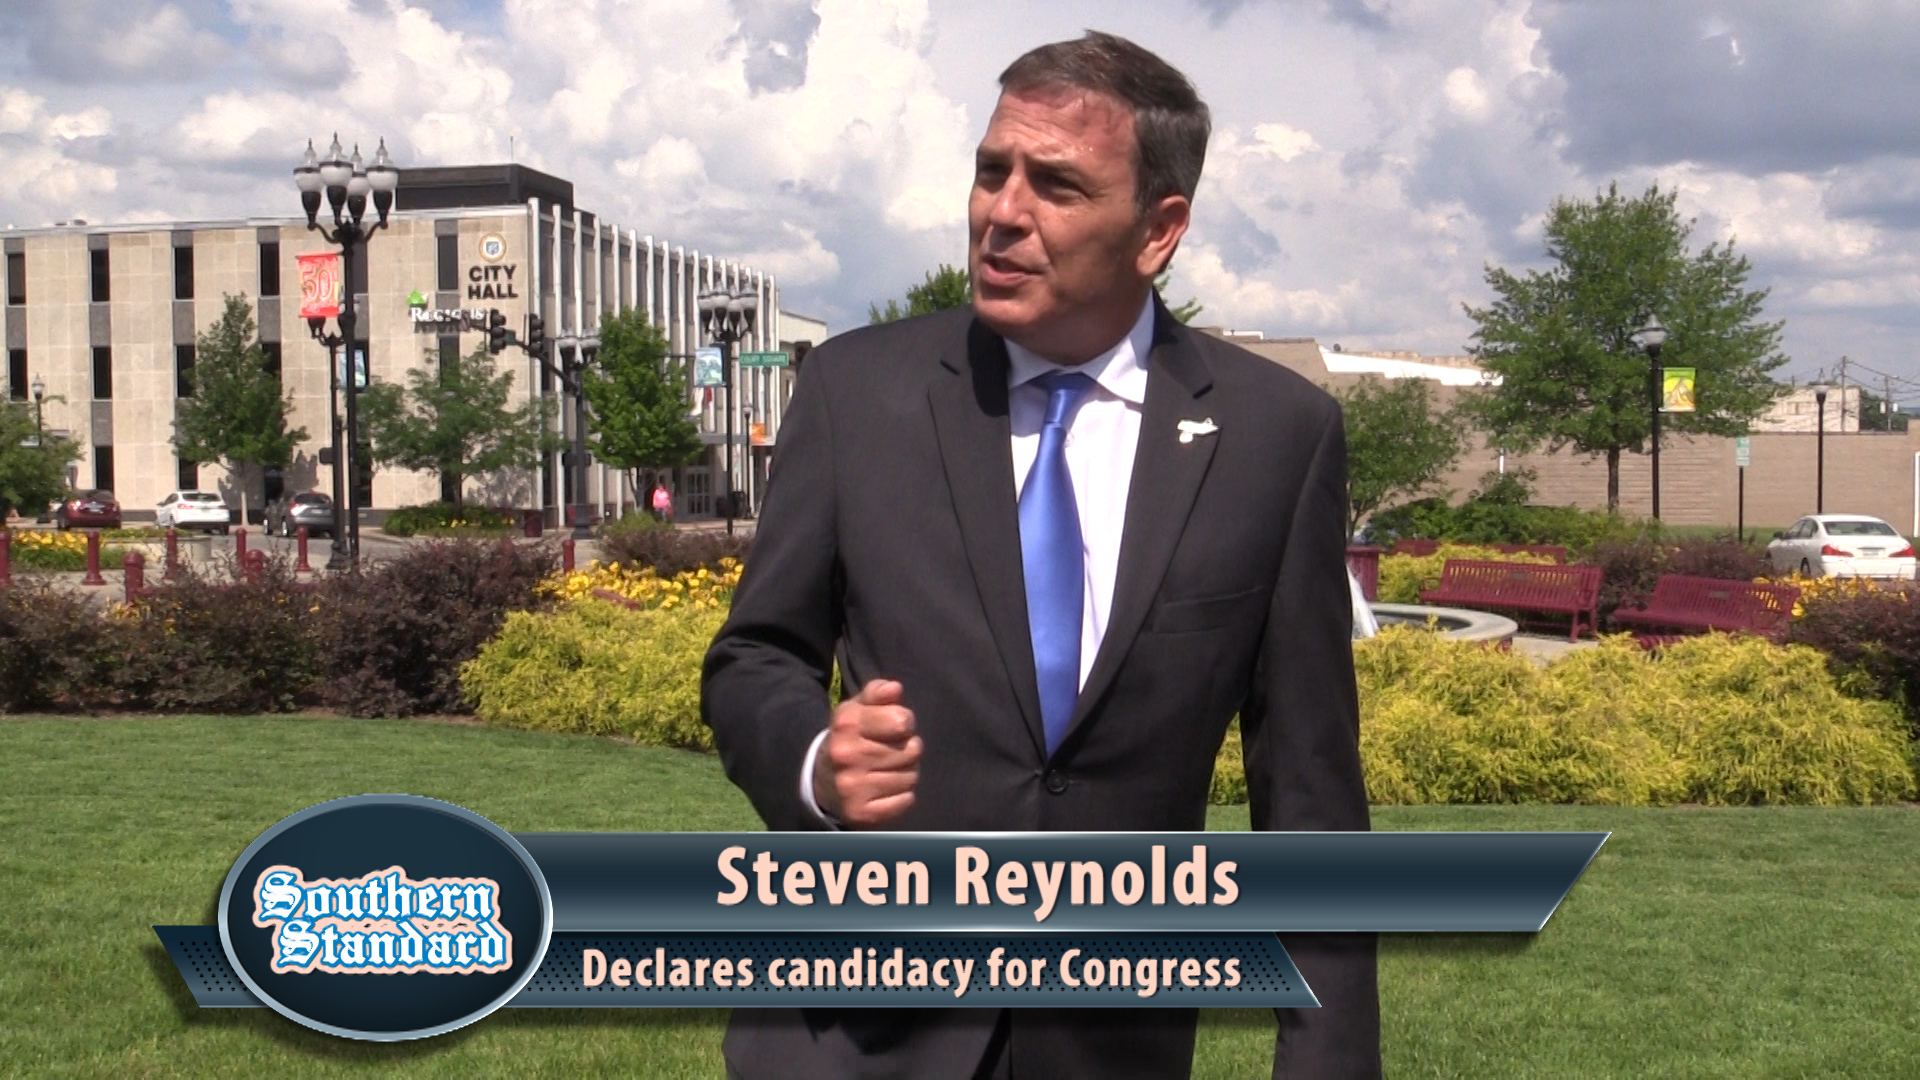 Steven Reynolds declares for Congress